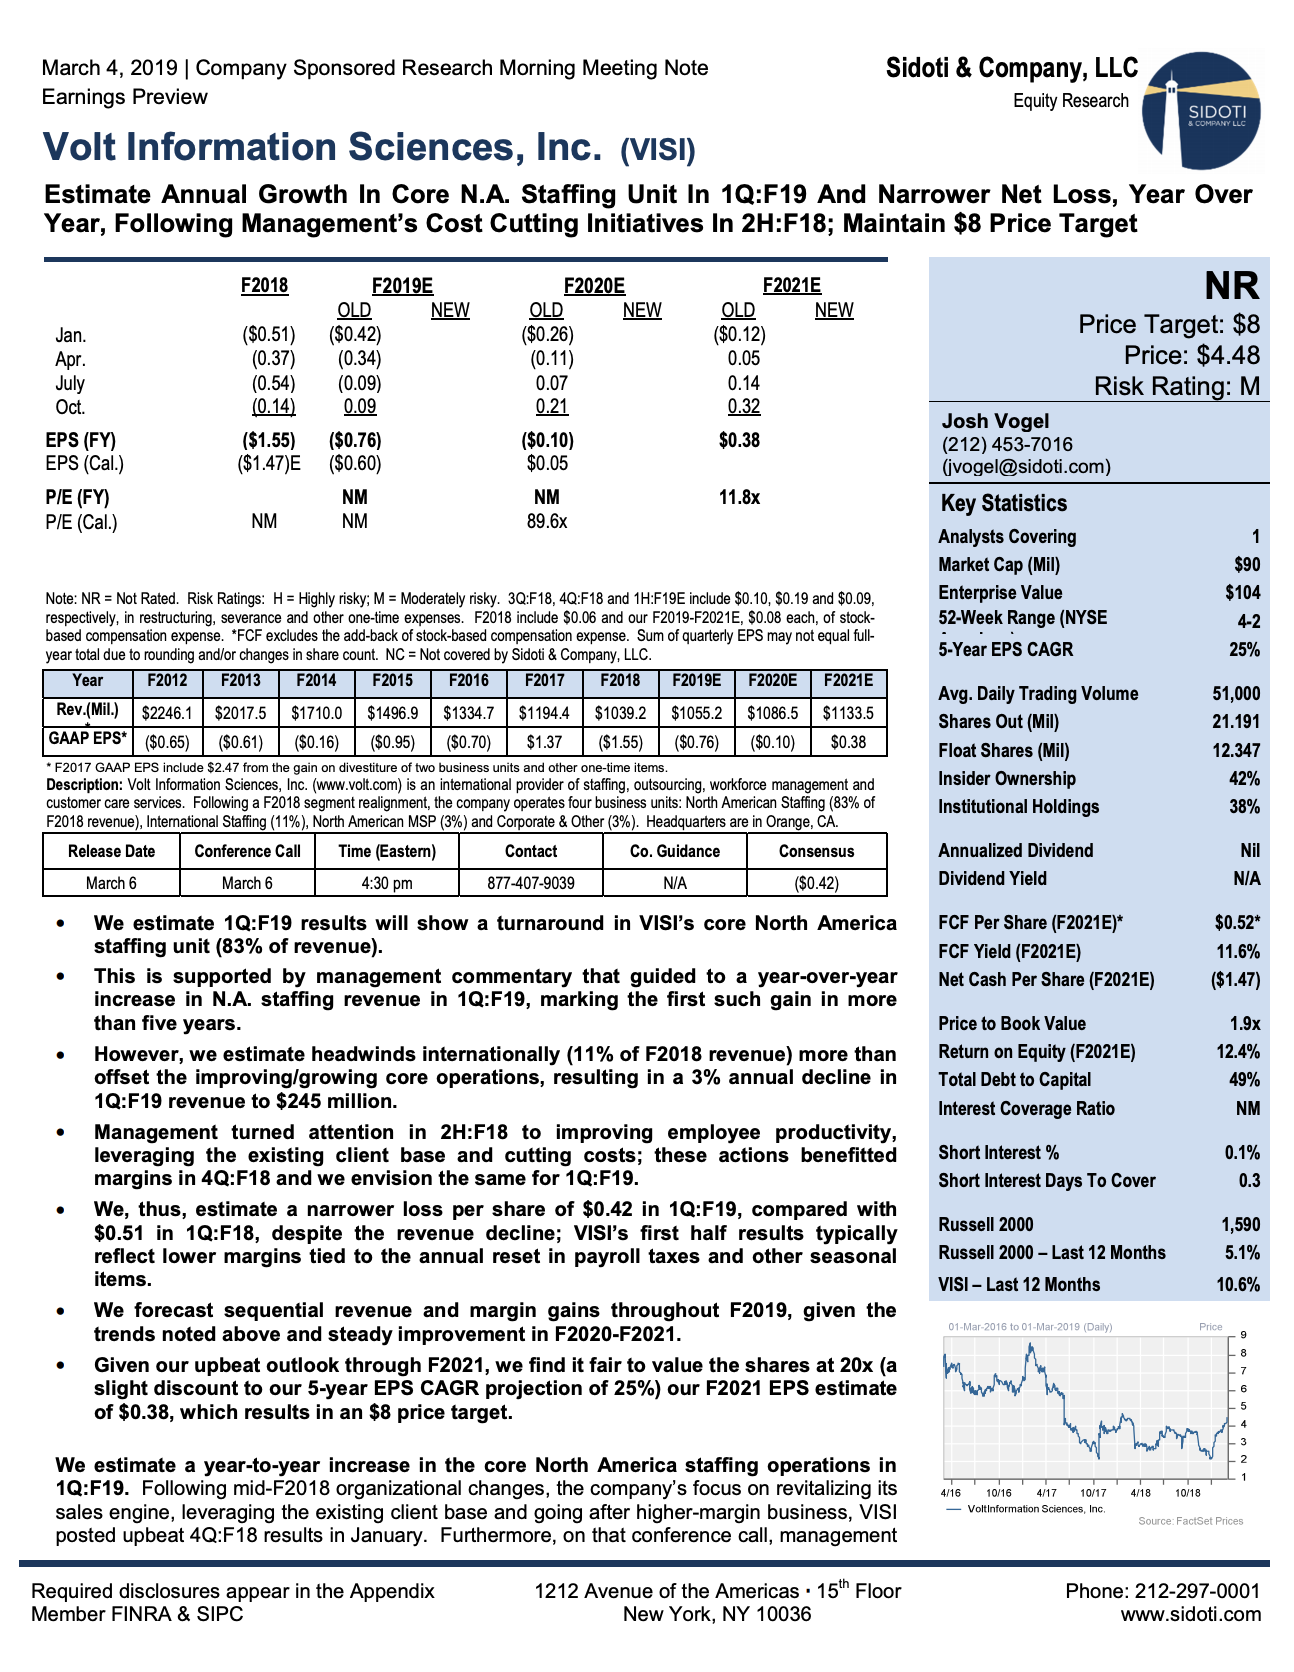 Earnings Preview: March 4, 2019